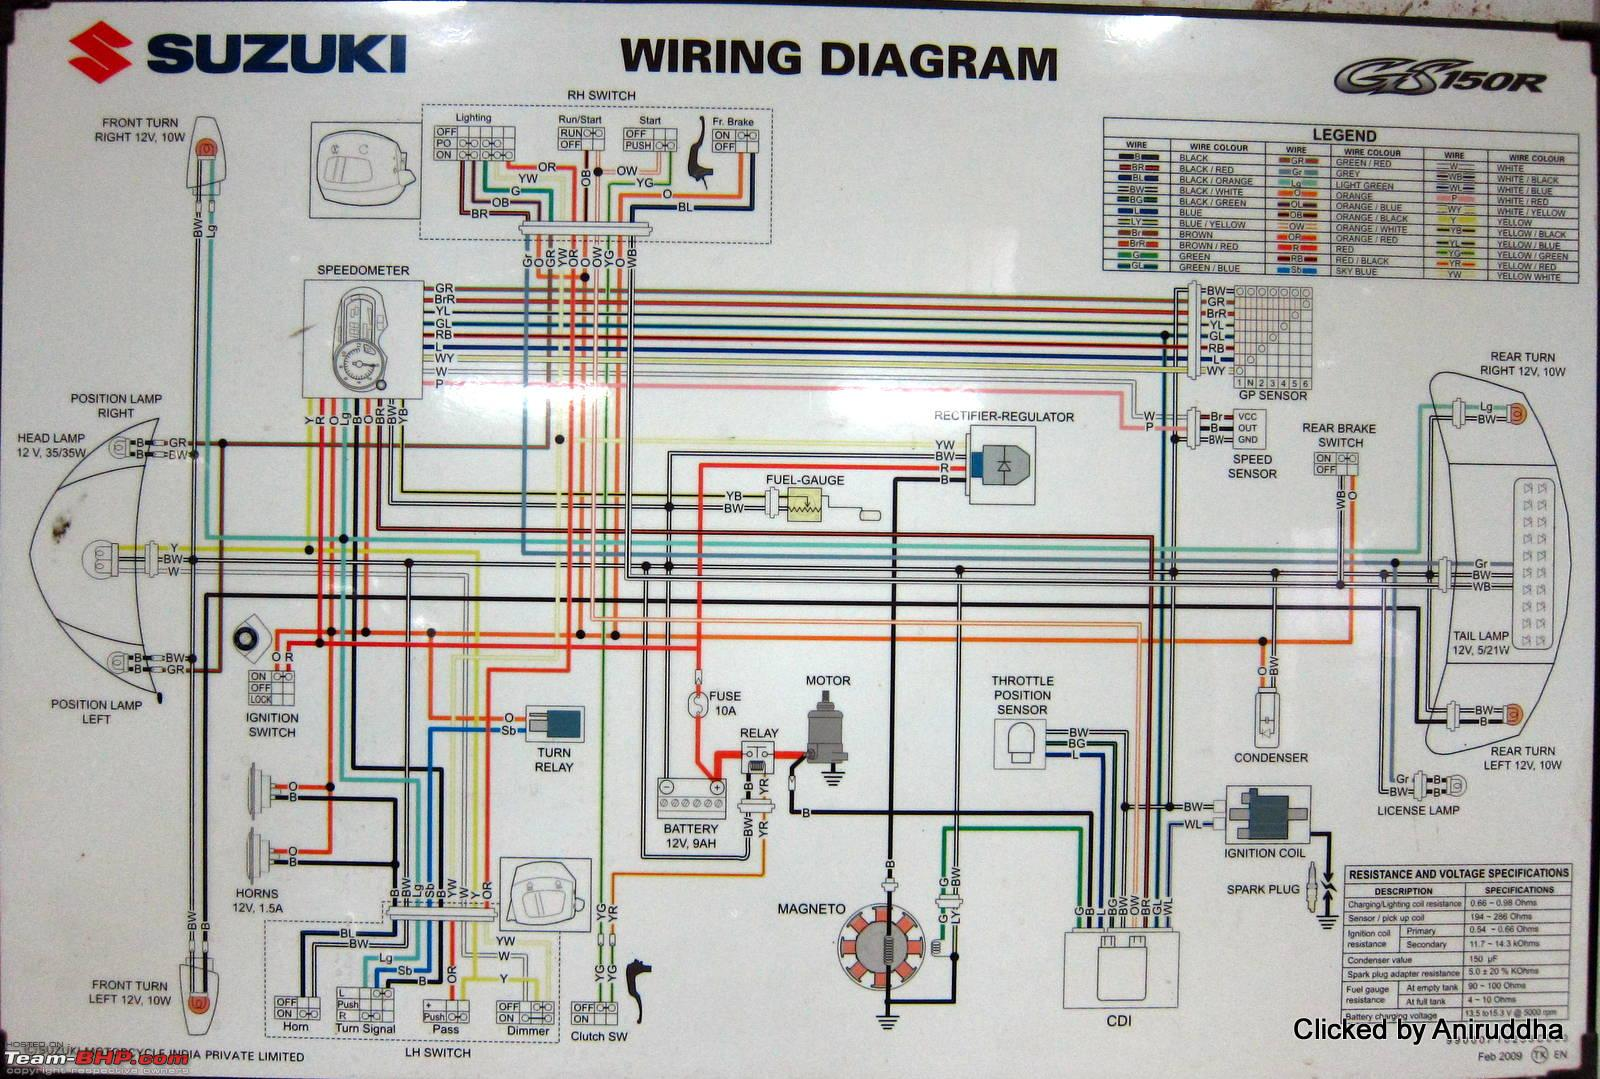 Yamaha 2 Stroke Outboard Wiring Diagram Guide And Troubleshooting 70 Hp Circuit Diagrams Of Indian Motorcycles Scooters Team Bhp 250